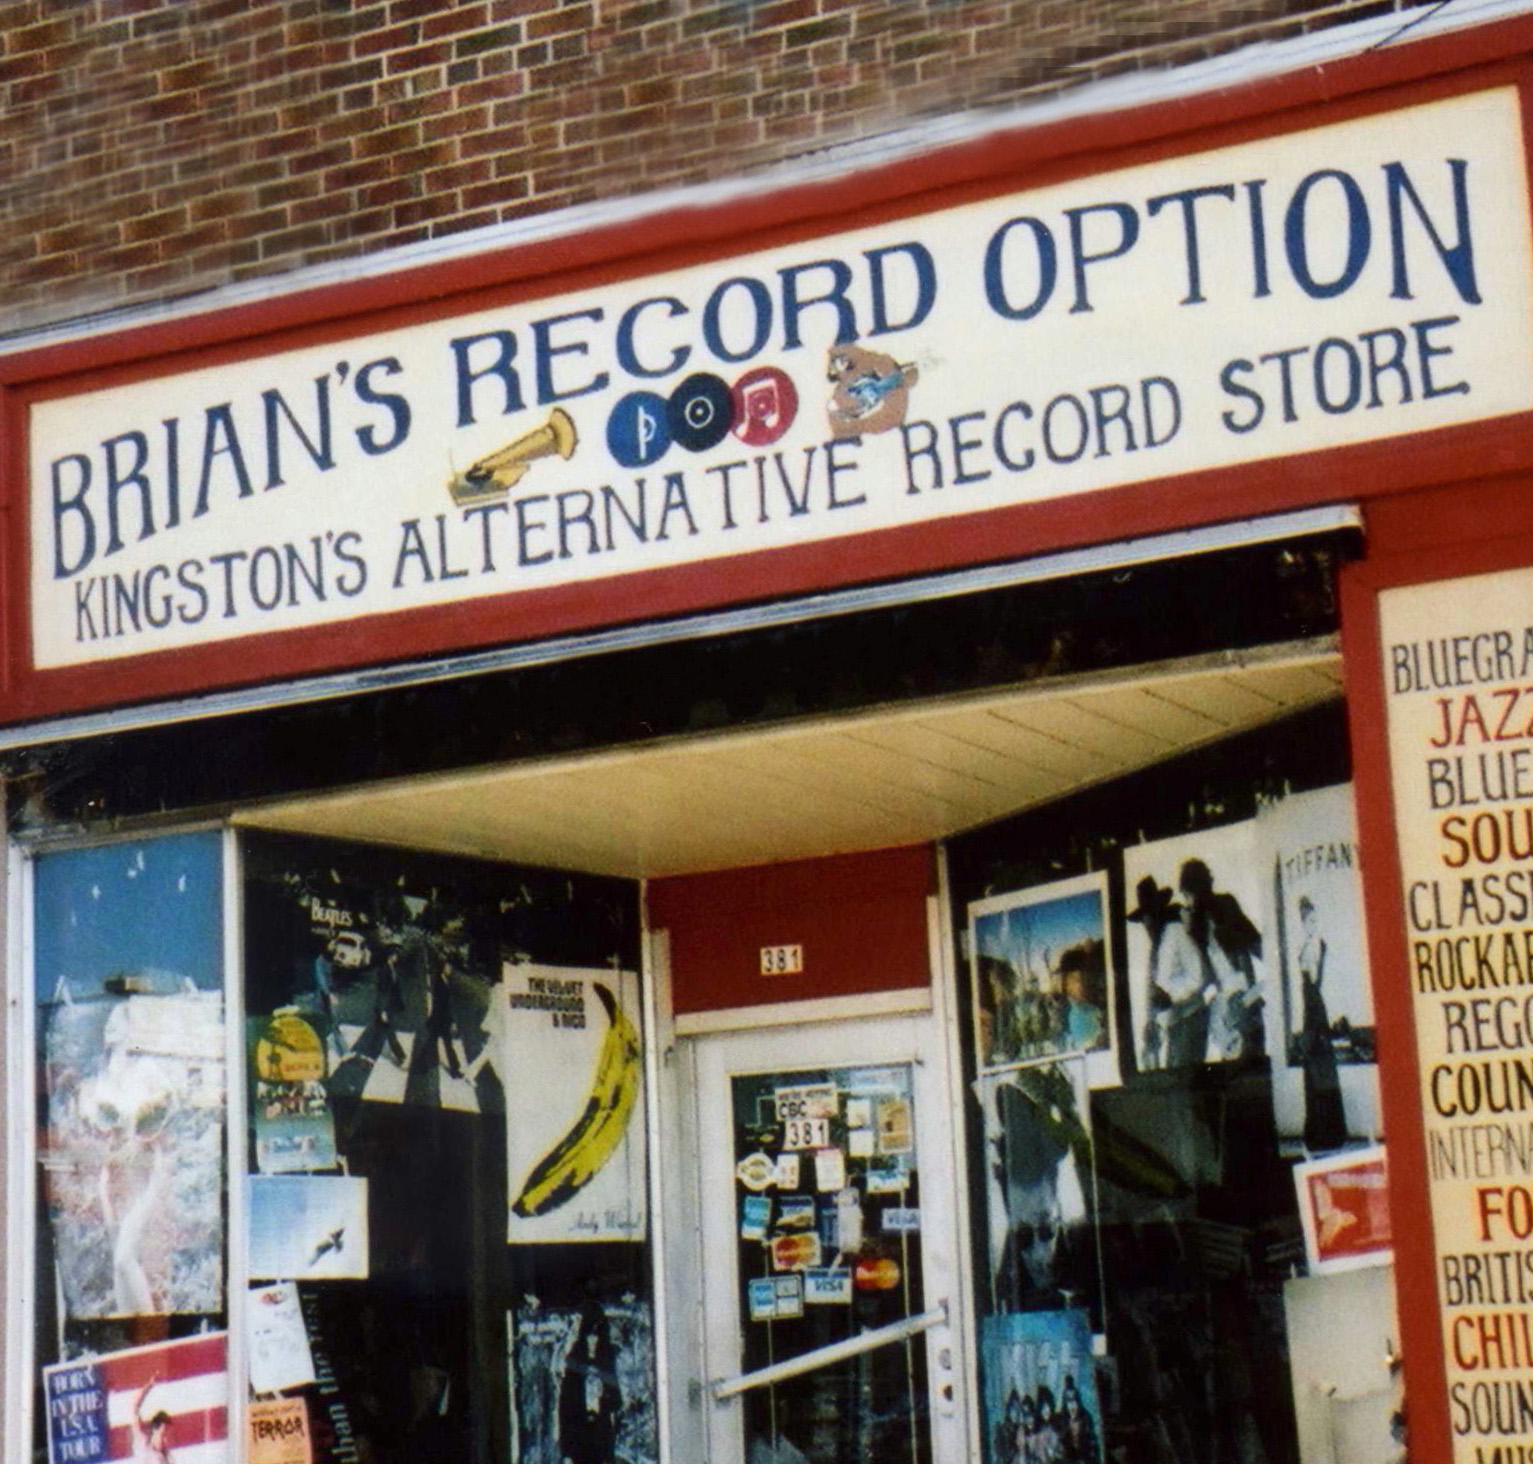 Brian's Record Option